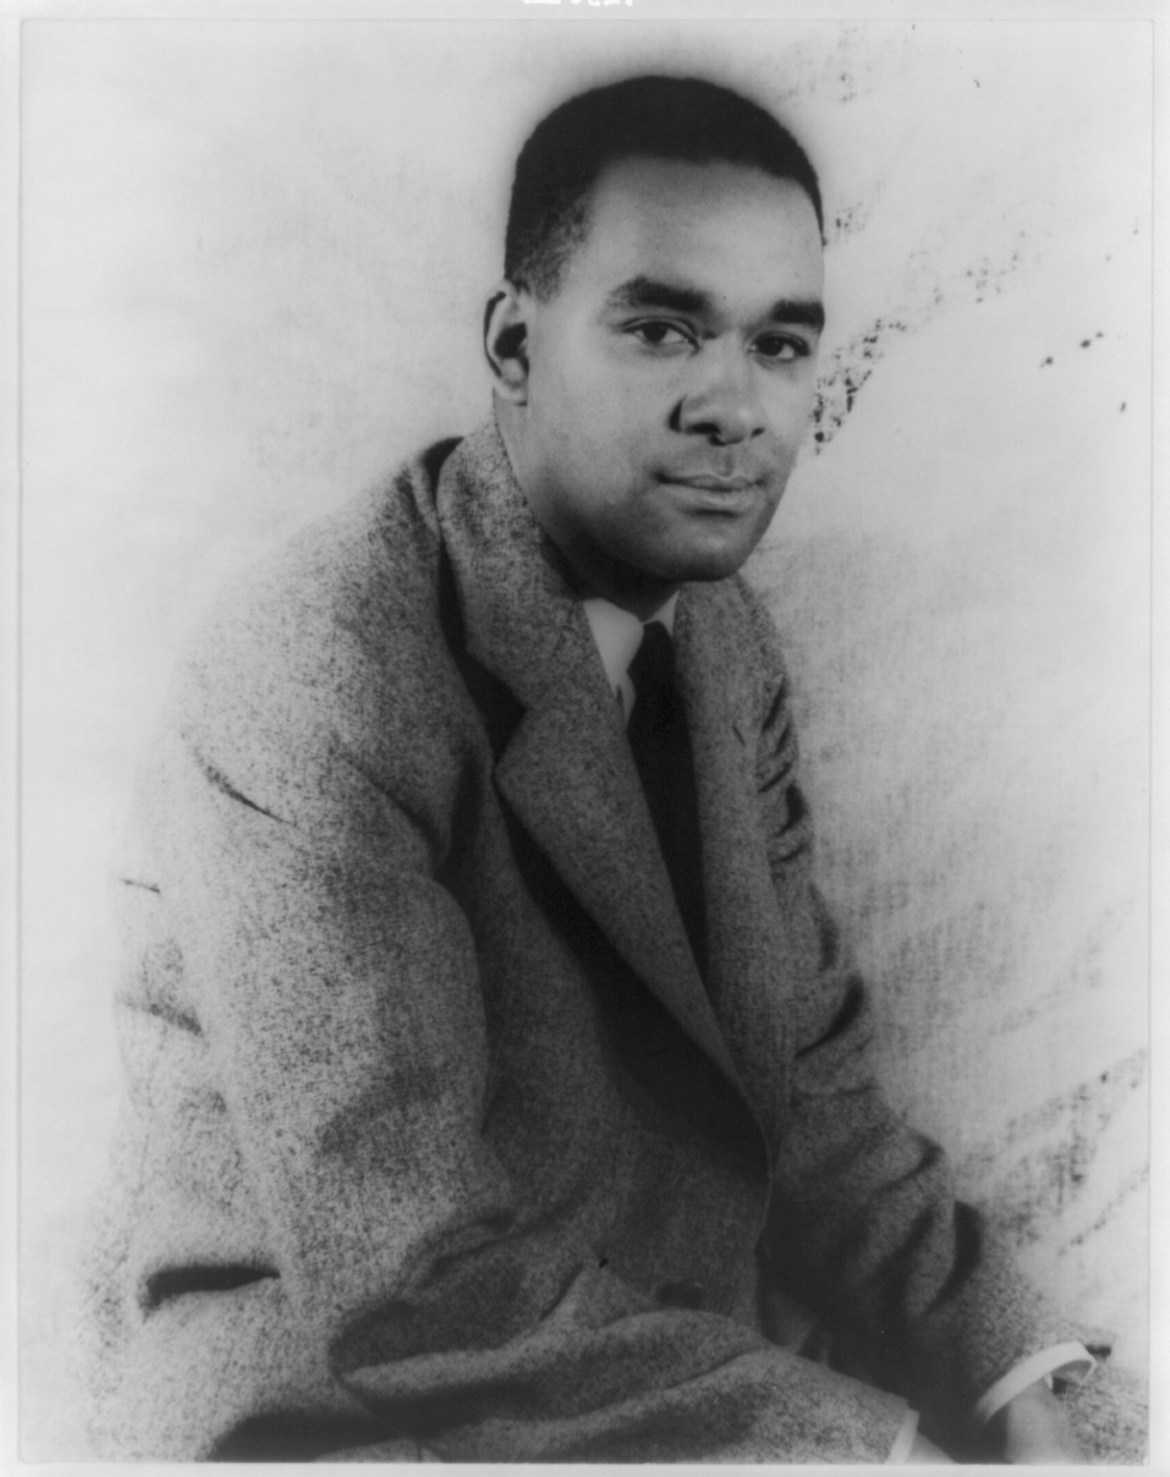 A black and white portrait of author Richard Wright, pictured seated.